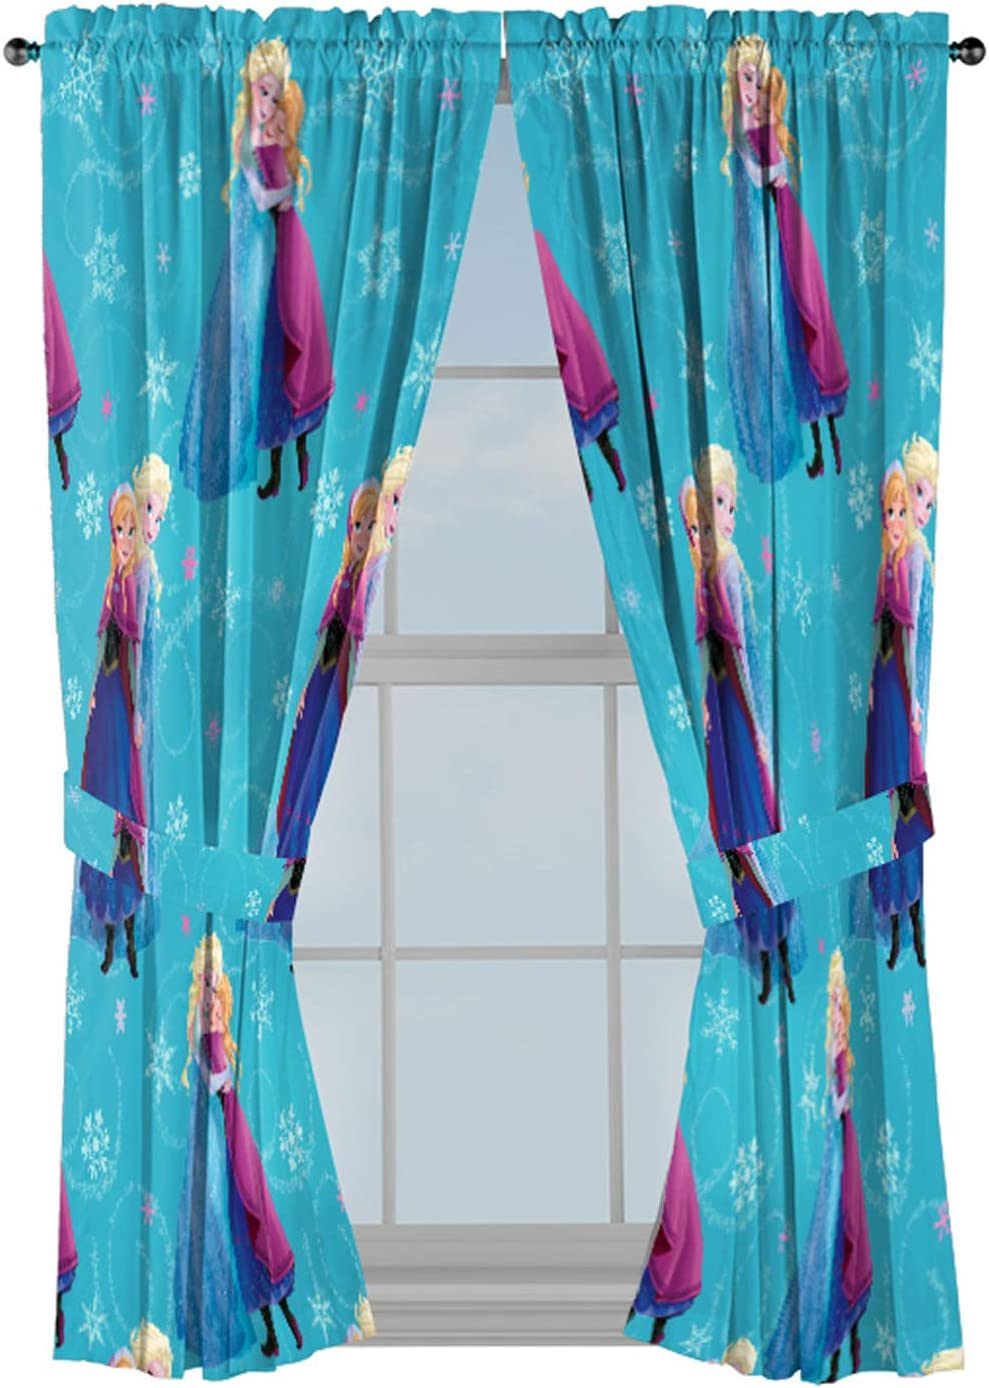 "Jay Franco Disney Frozen Swirl 63"" inch Drapes 4 Piece Set - Beautiful Room Décor & Easy Set up, Bedding Features Anna & Elsa - Window Curtains Include 2 Panels & 2 Tiebacks (Official Disney Product)"